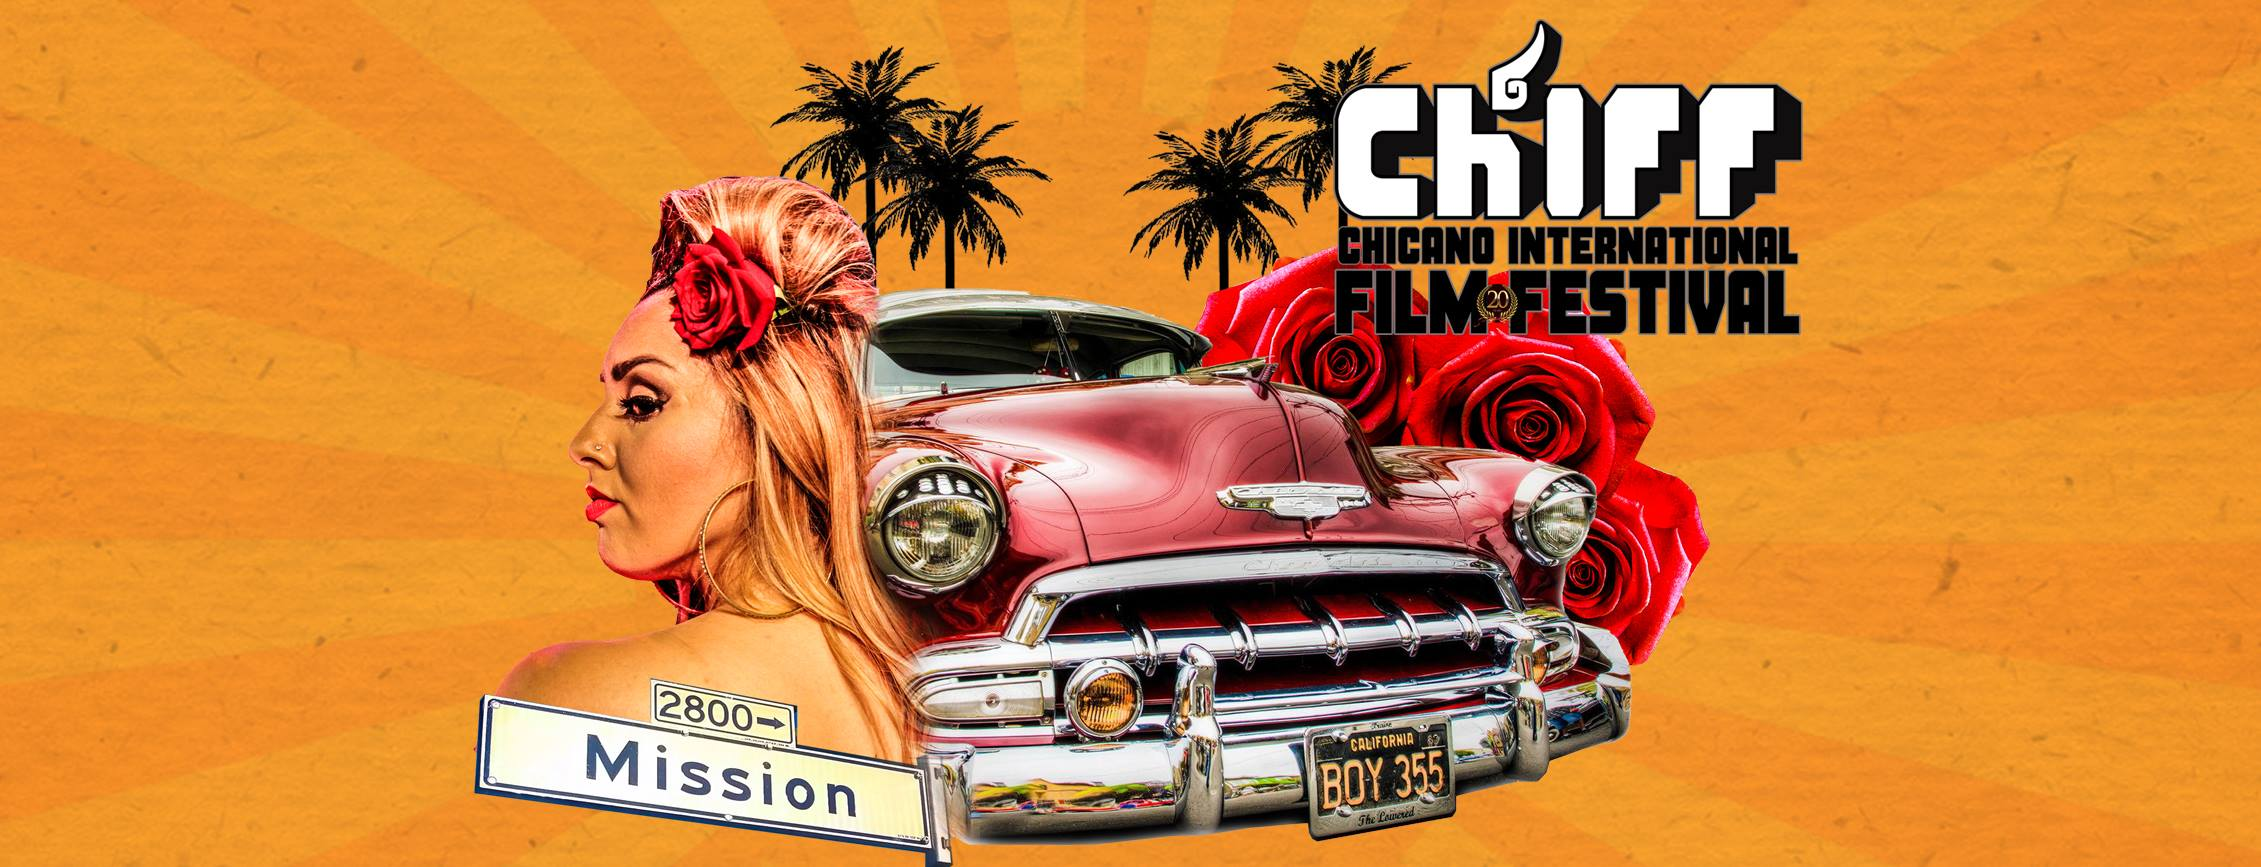 Chicano International Film Festival visits 24th Street this weekend